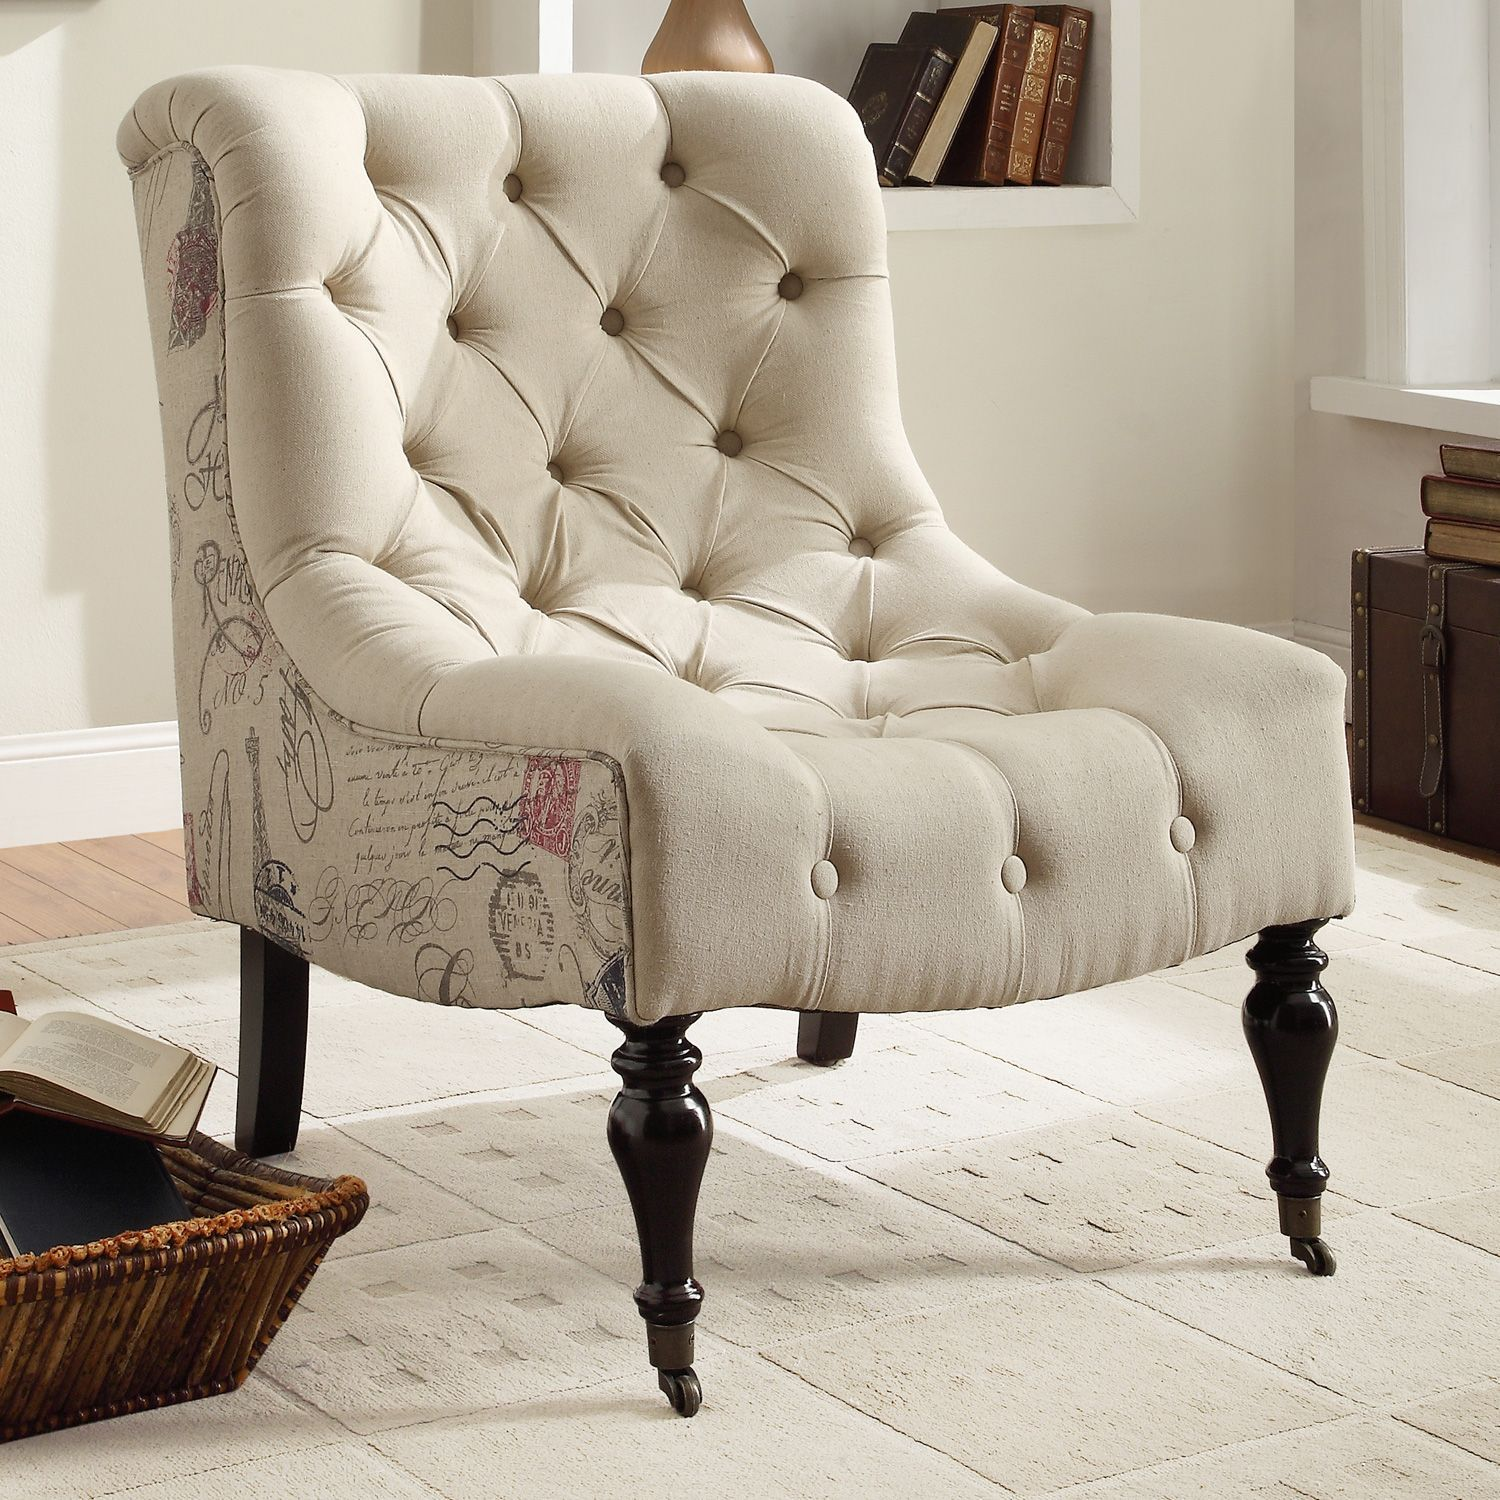 Anya Tufted Accent Chair $199 I THINK THIS IS THE ONE REGINA WAS